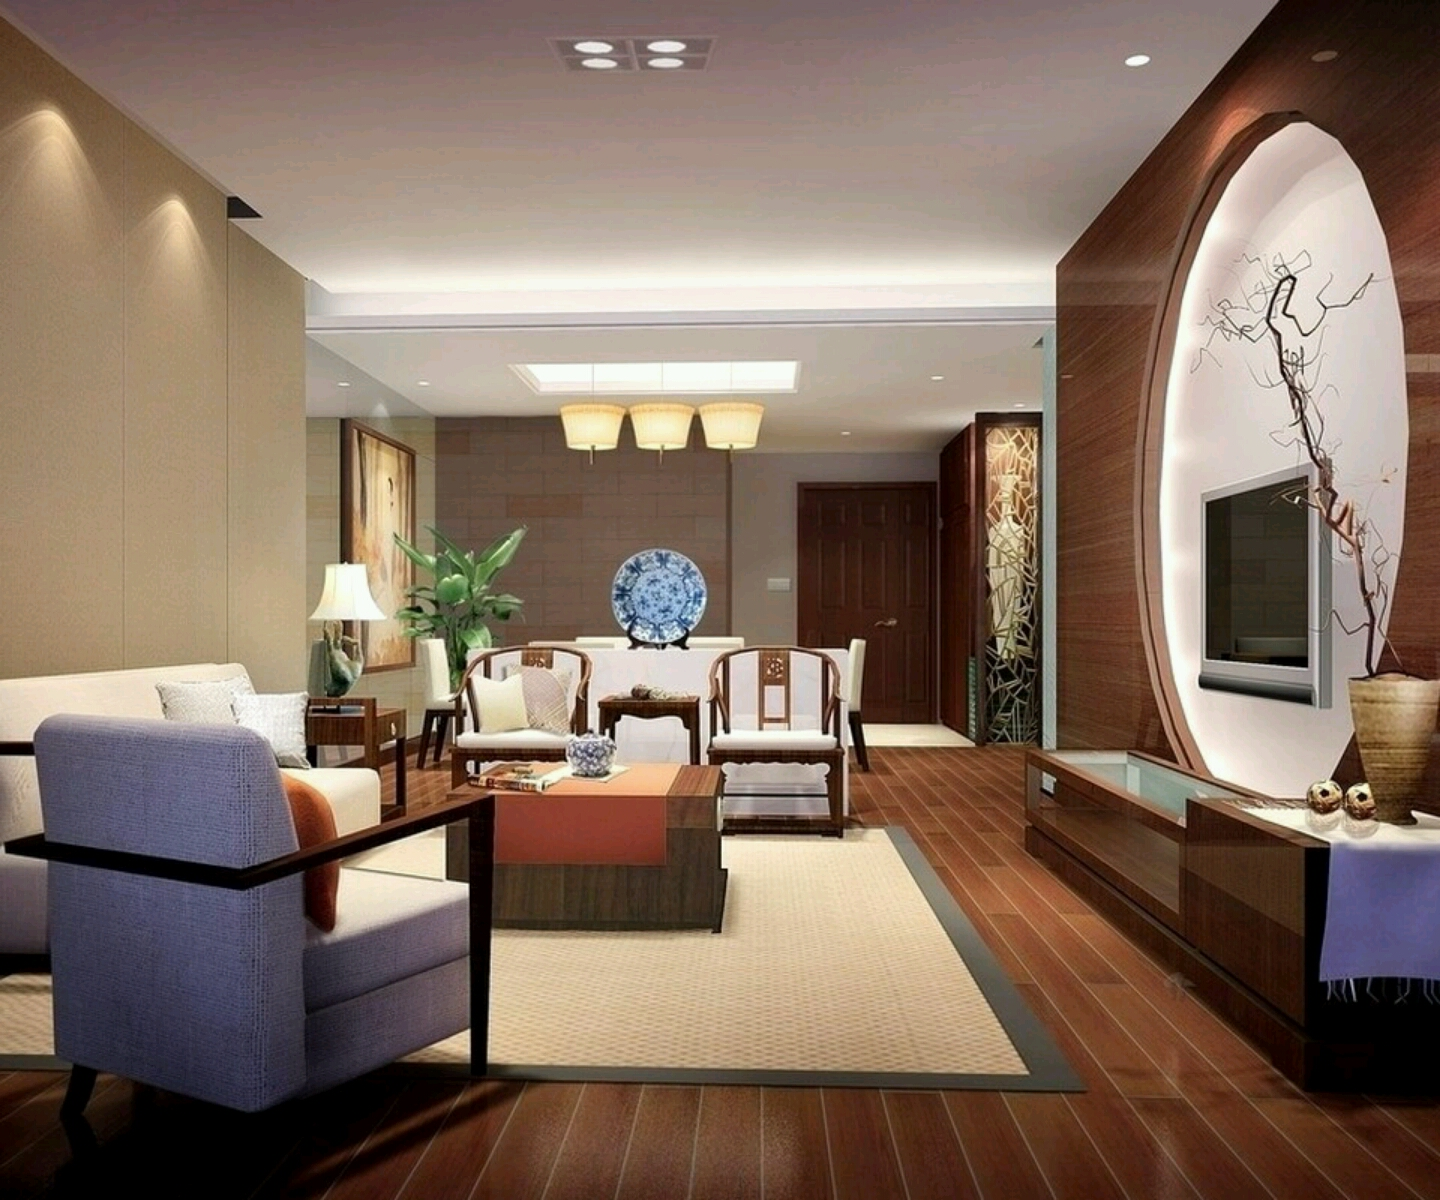 Luxury homes interior decoration living room designs ideas for Luxury home interior design